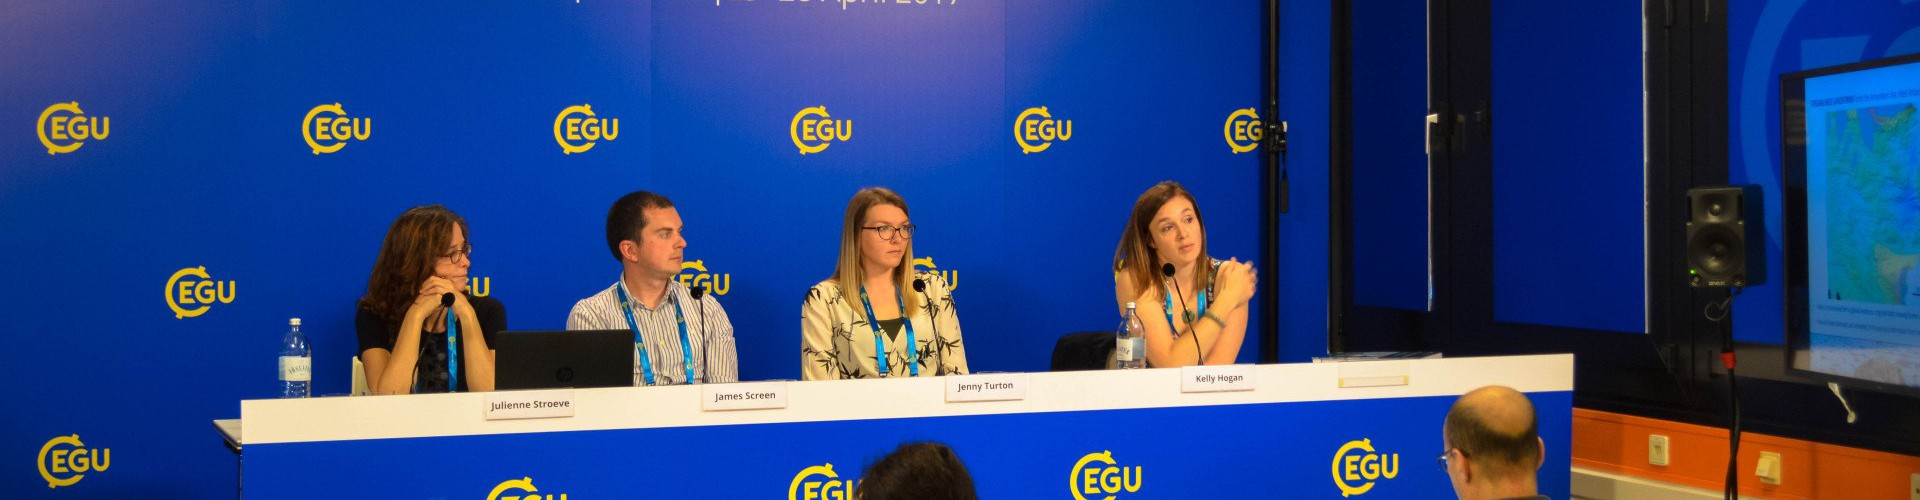 EGU press conference (Credit: Kai Boggild/EGU)